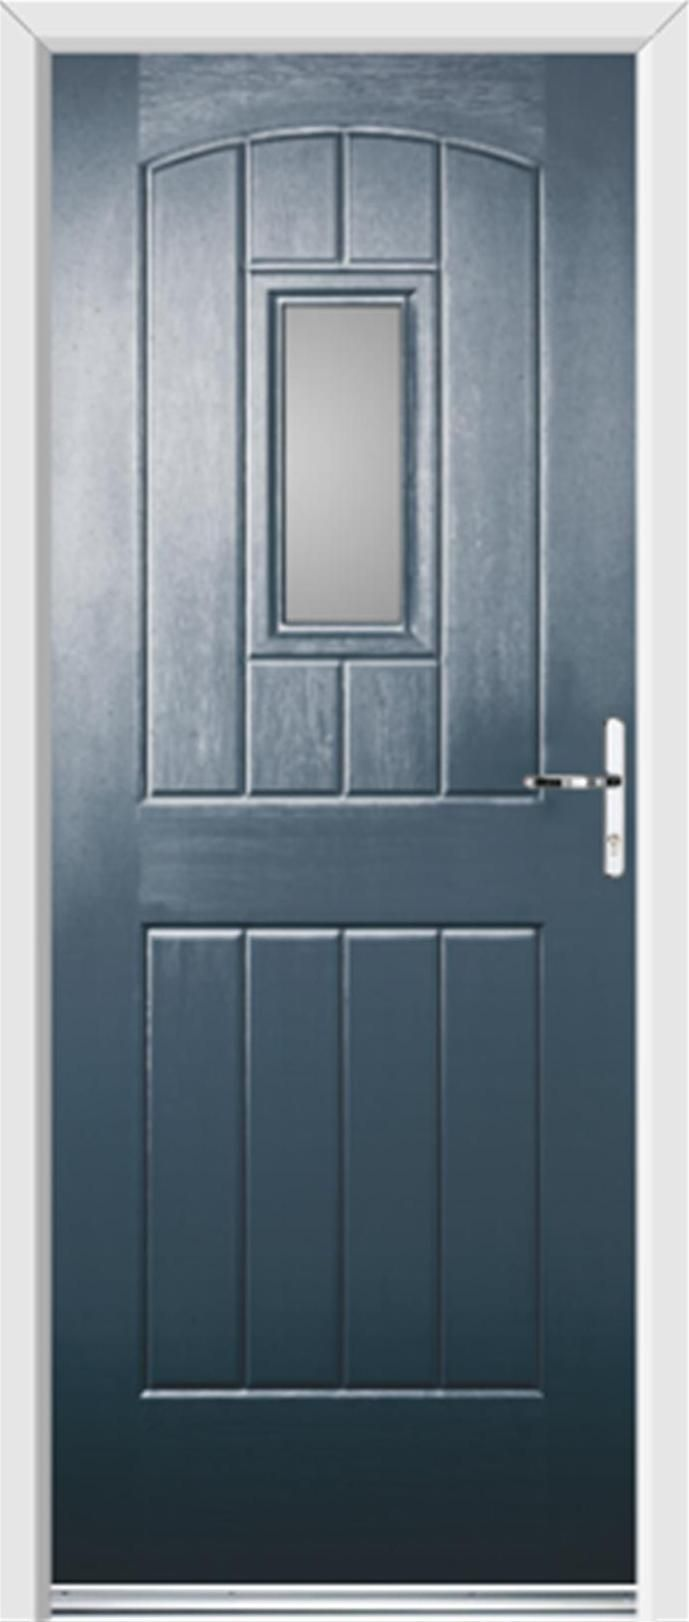 Cottage Style Exterior Doors   Doors English Cottage Clear Glazed  Anthracite Grey   UPVC Front Doors